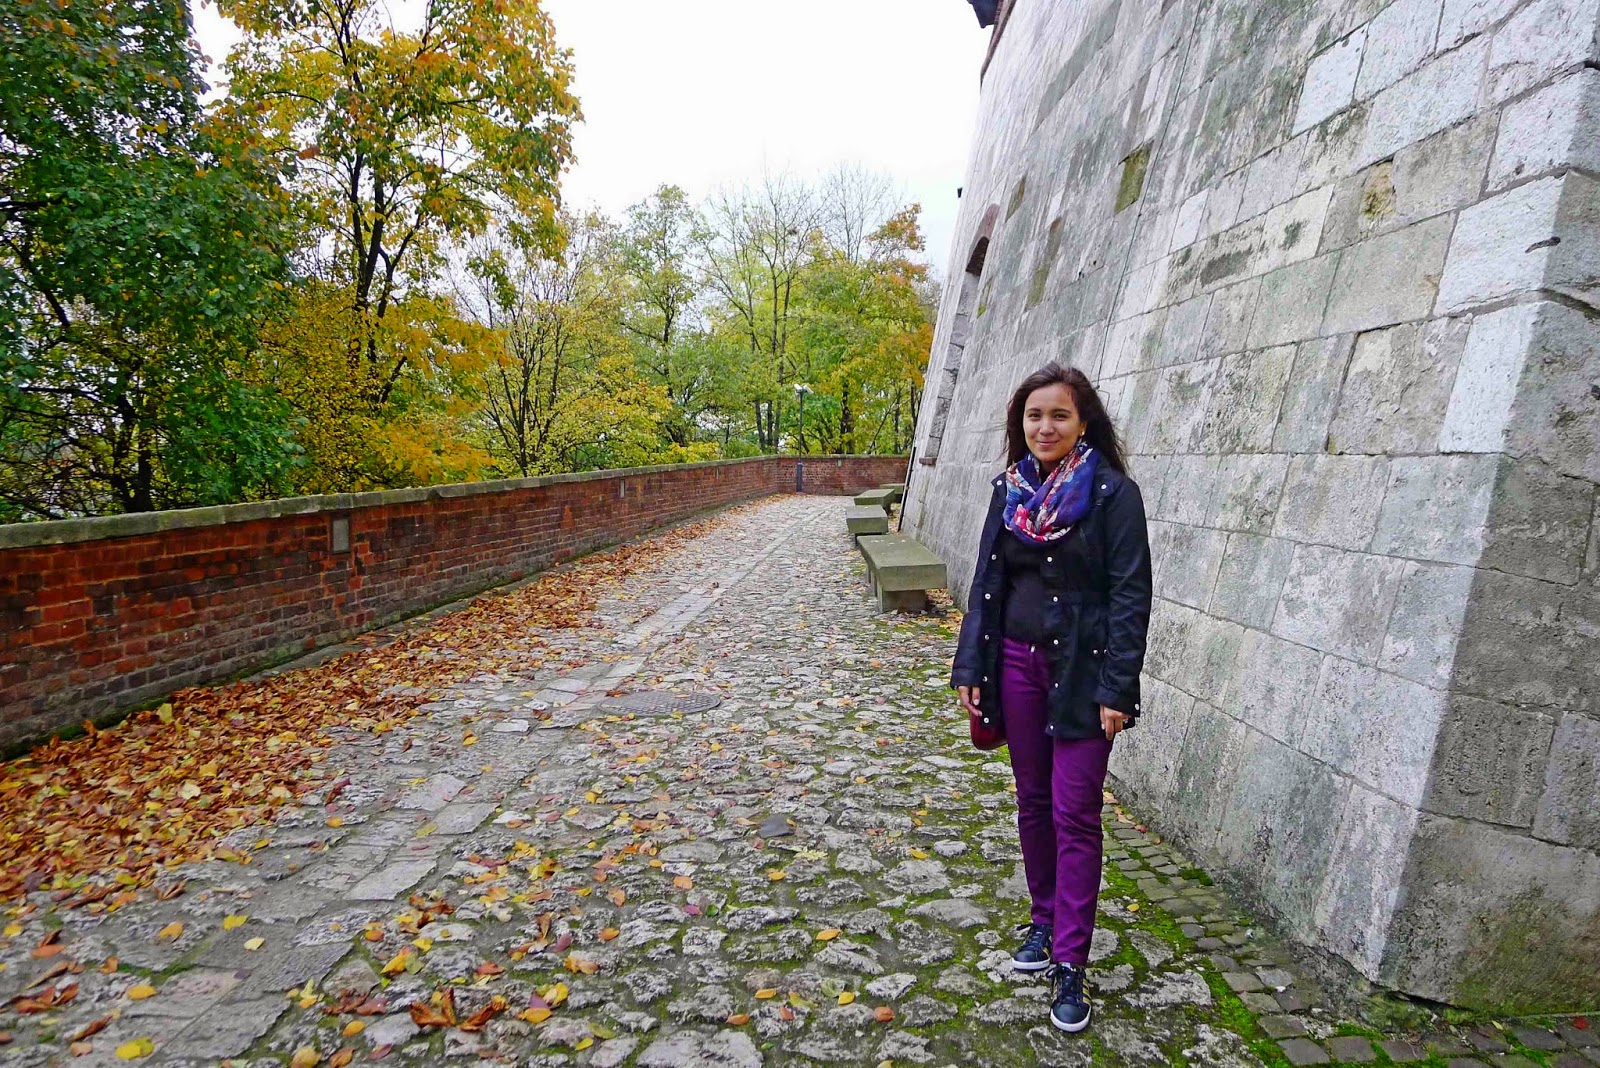 Wife at the Wawel Wall